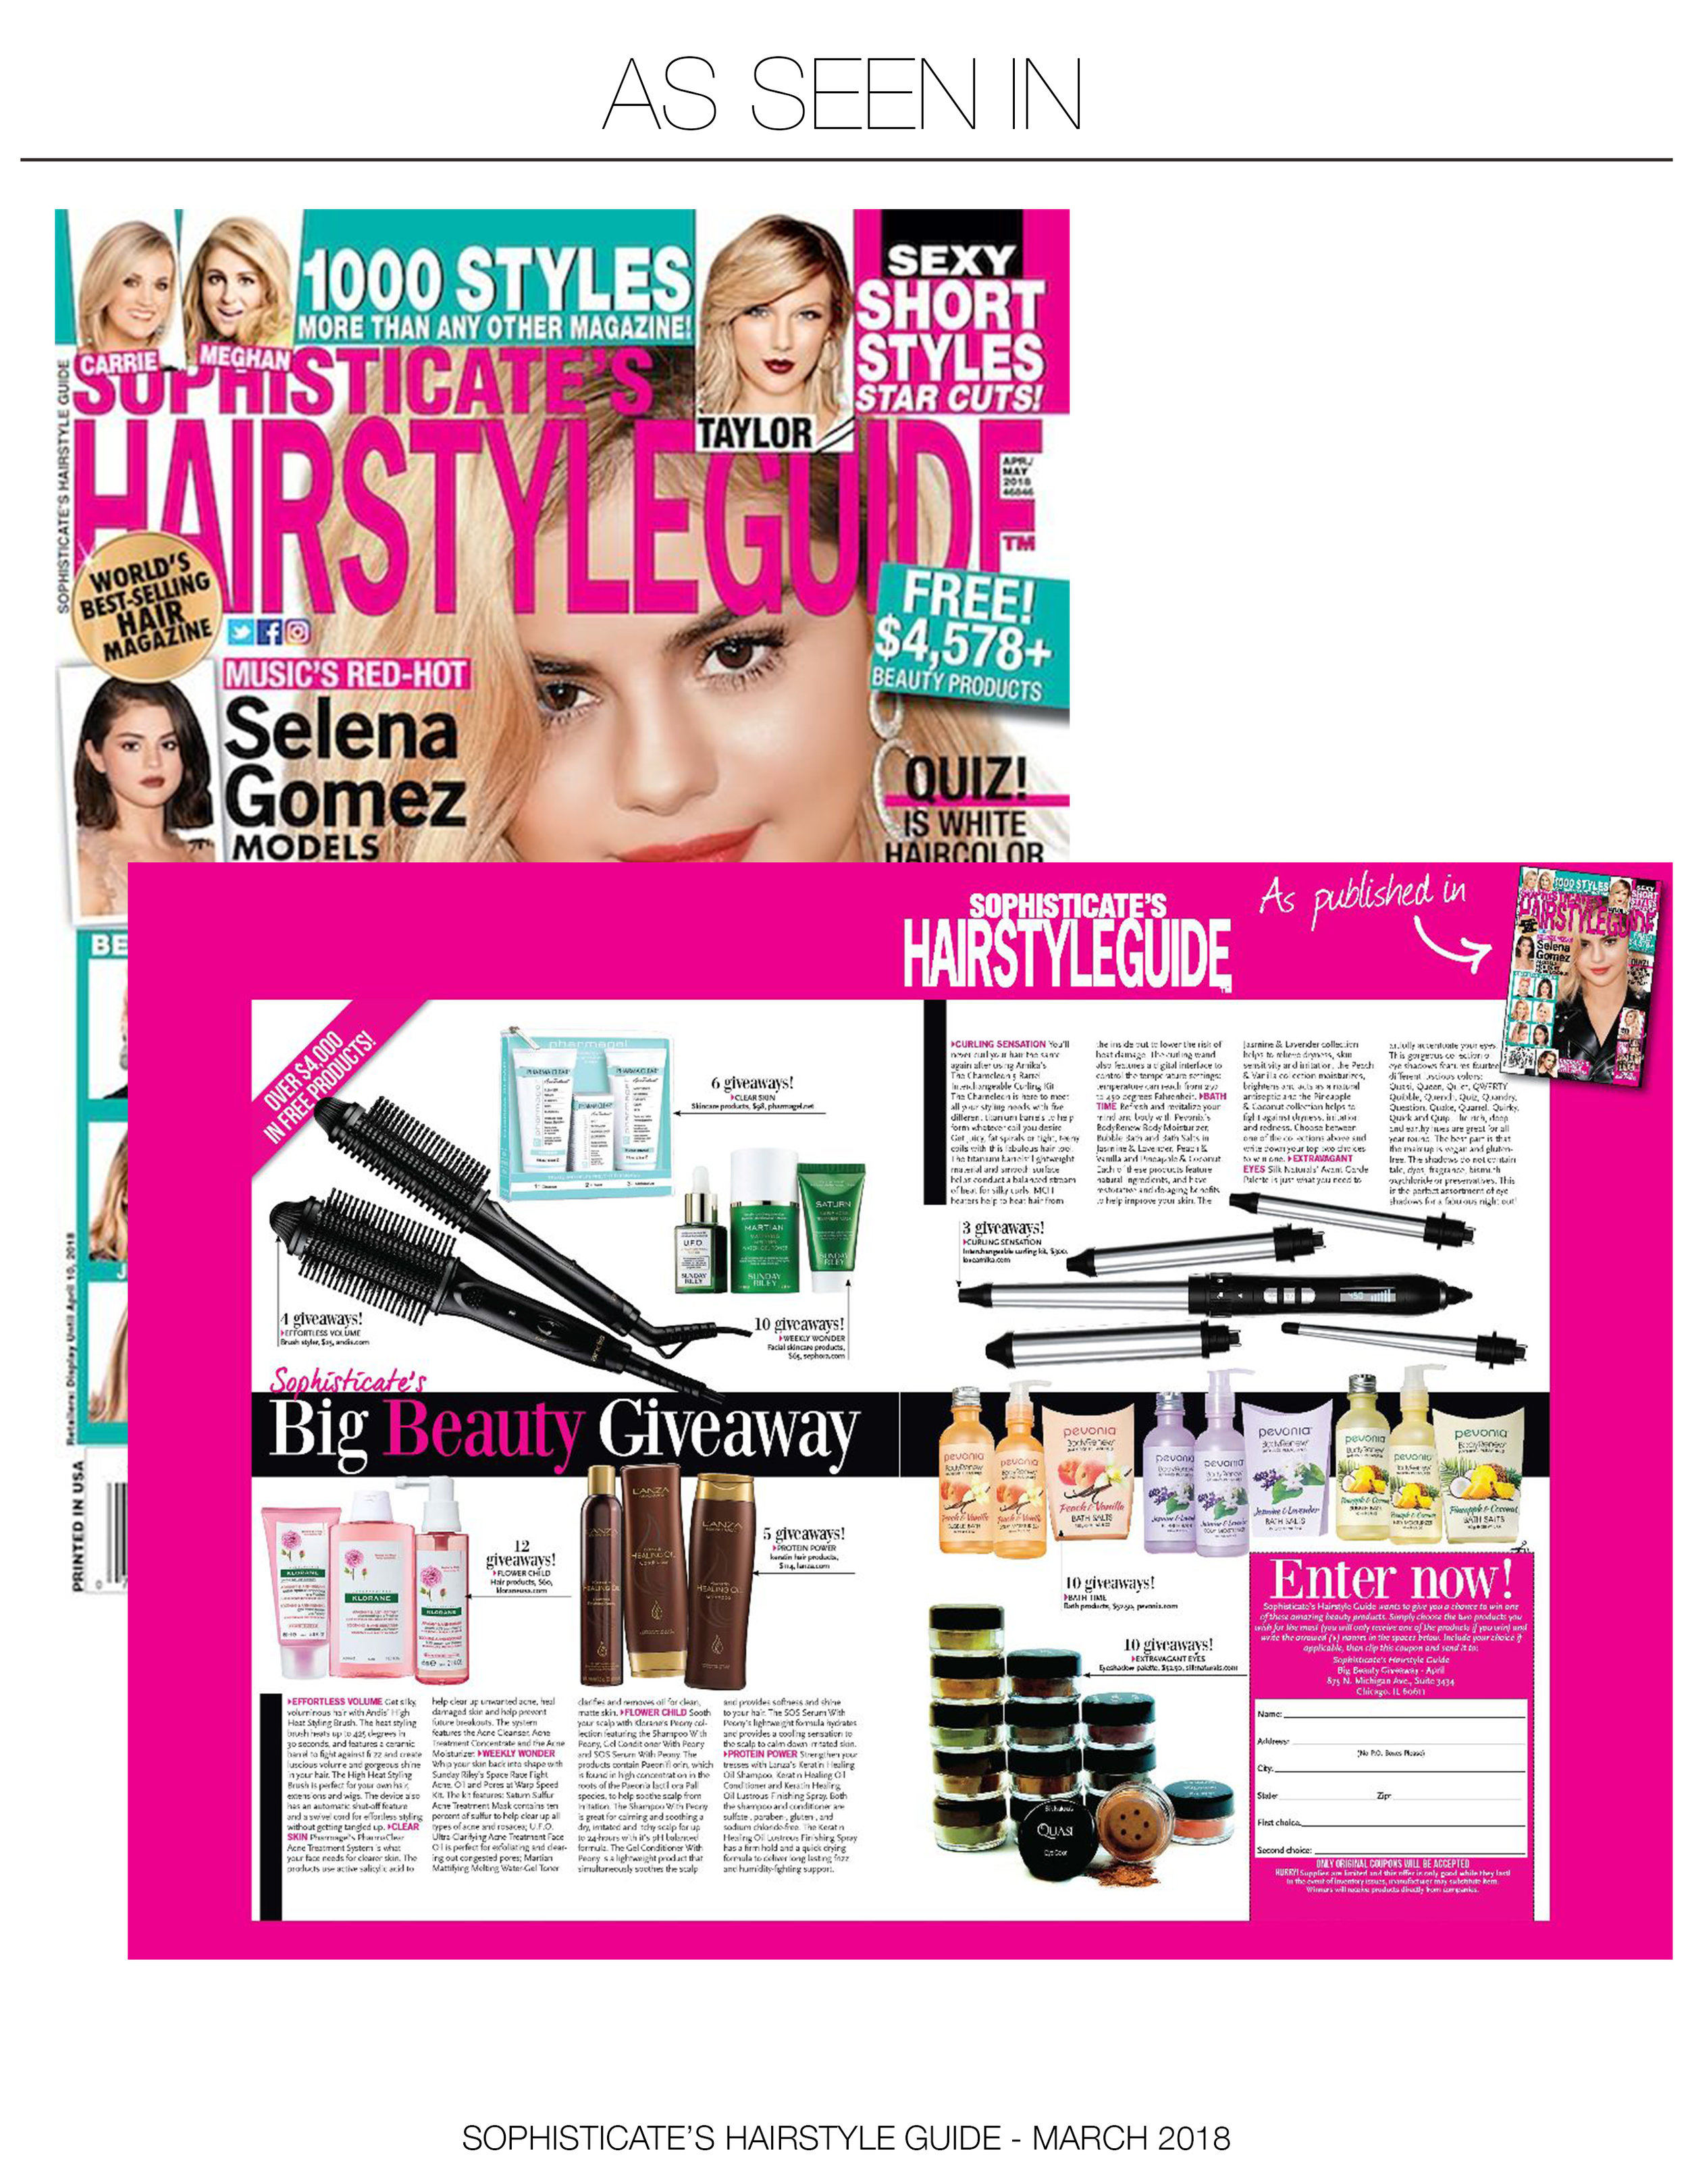 Pharmagel_SophisticatesHairStyleGuide_March2018.jpg